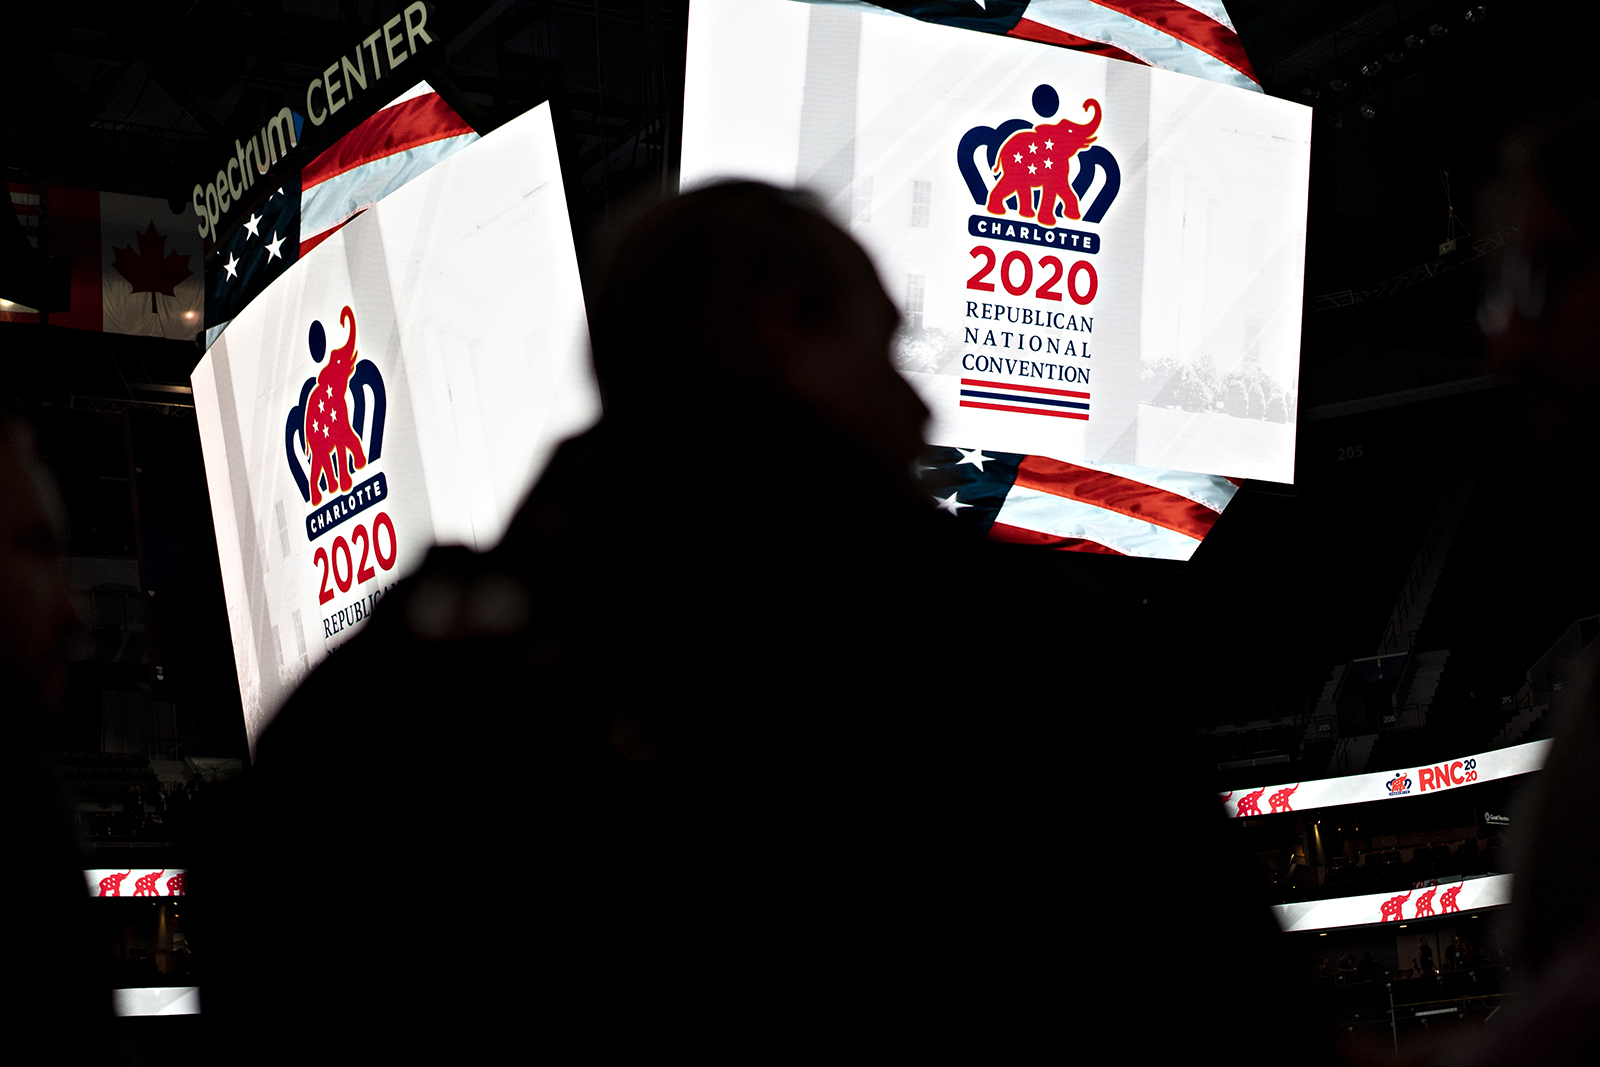 2020 Republican National Convention (RNC) signage is displayed inside the Spectrum Center during a media walk-through in Charlotte, North Carolina on November 12, 2019.